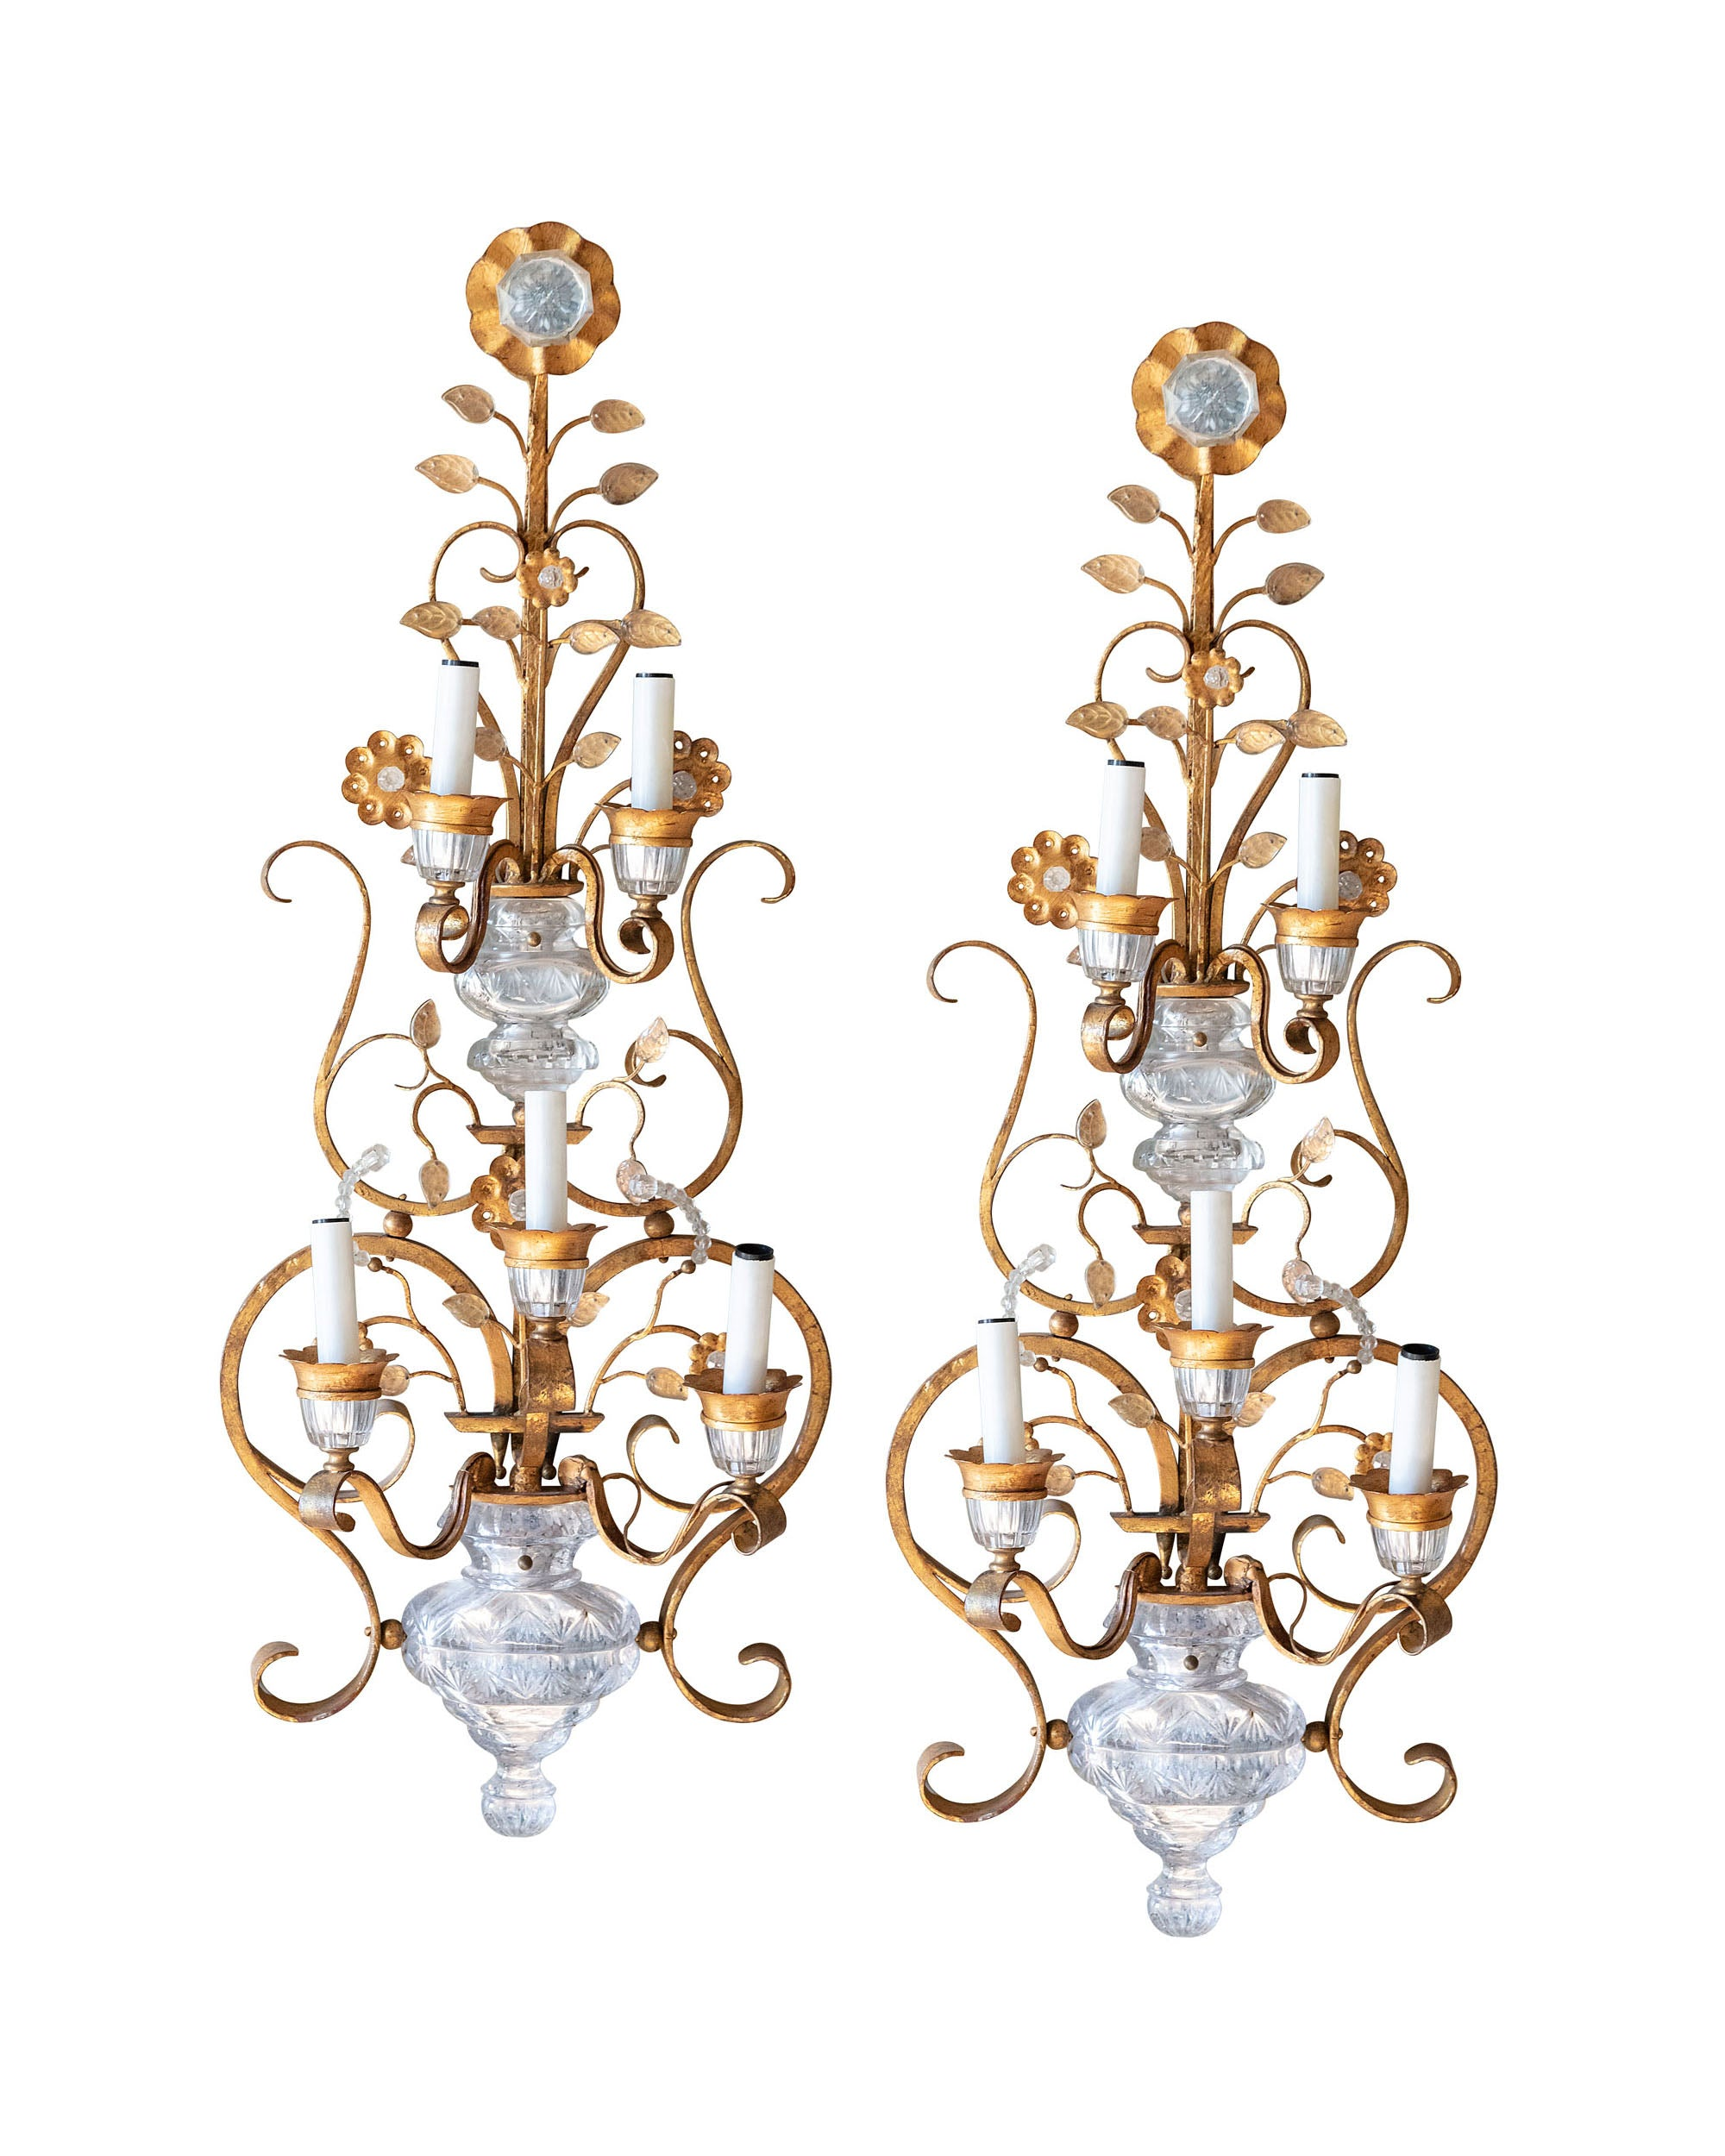 Pair of golden metal wall lights with crystals and five light holders